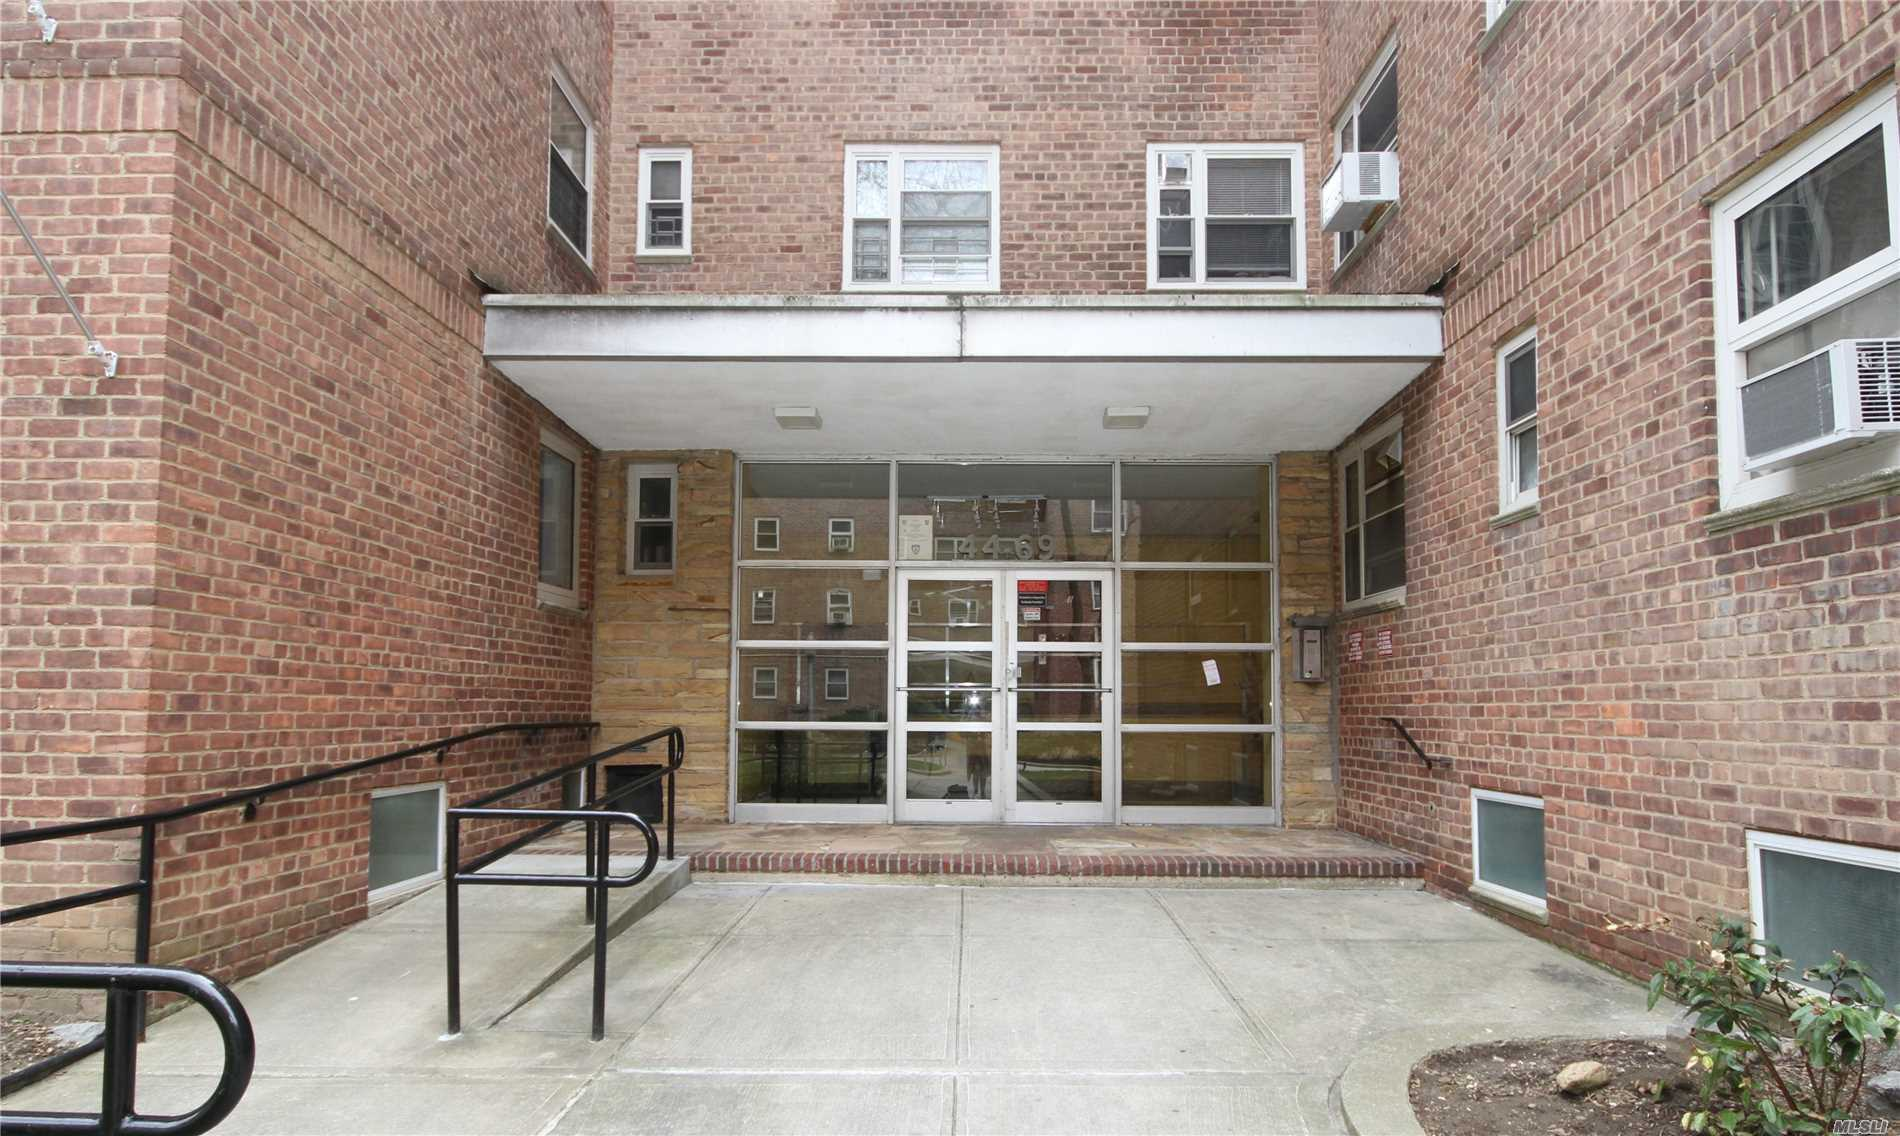 Franconia Village Co-Op, large 3 bed / 2 bath on the 4th floor. Prime downtown Flushing location close to all shopping and transportation; #7 subway, LIRR, local and express buses. Zoned for PS 024 and IS 237. No subletting allowed.